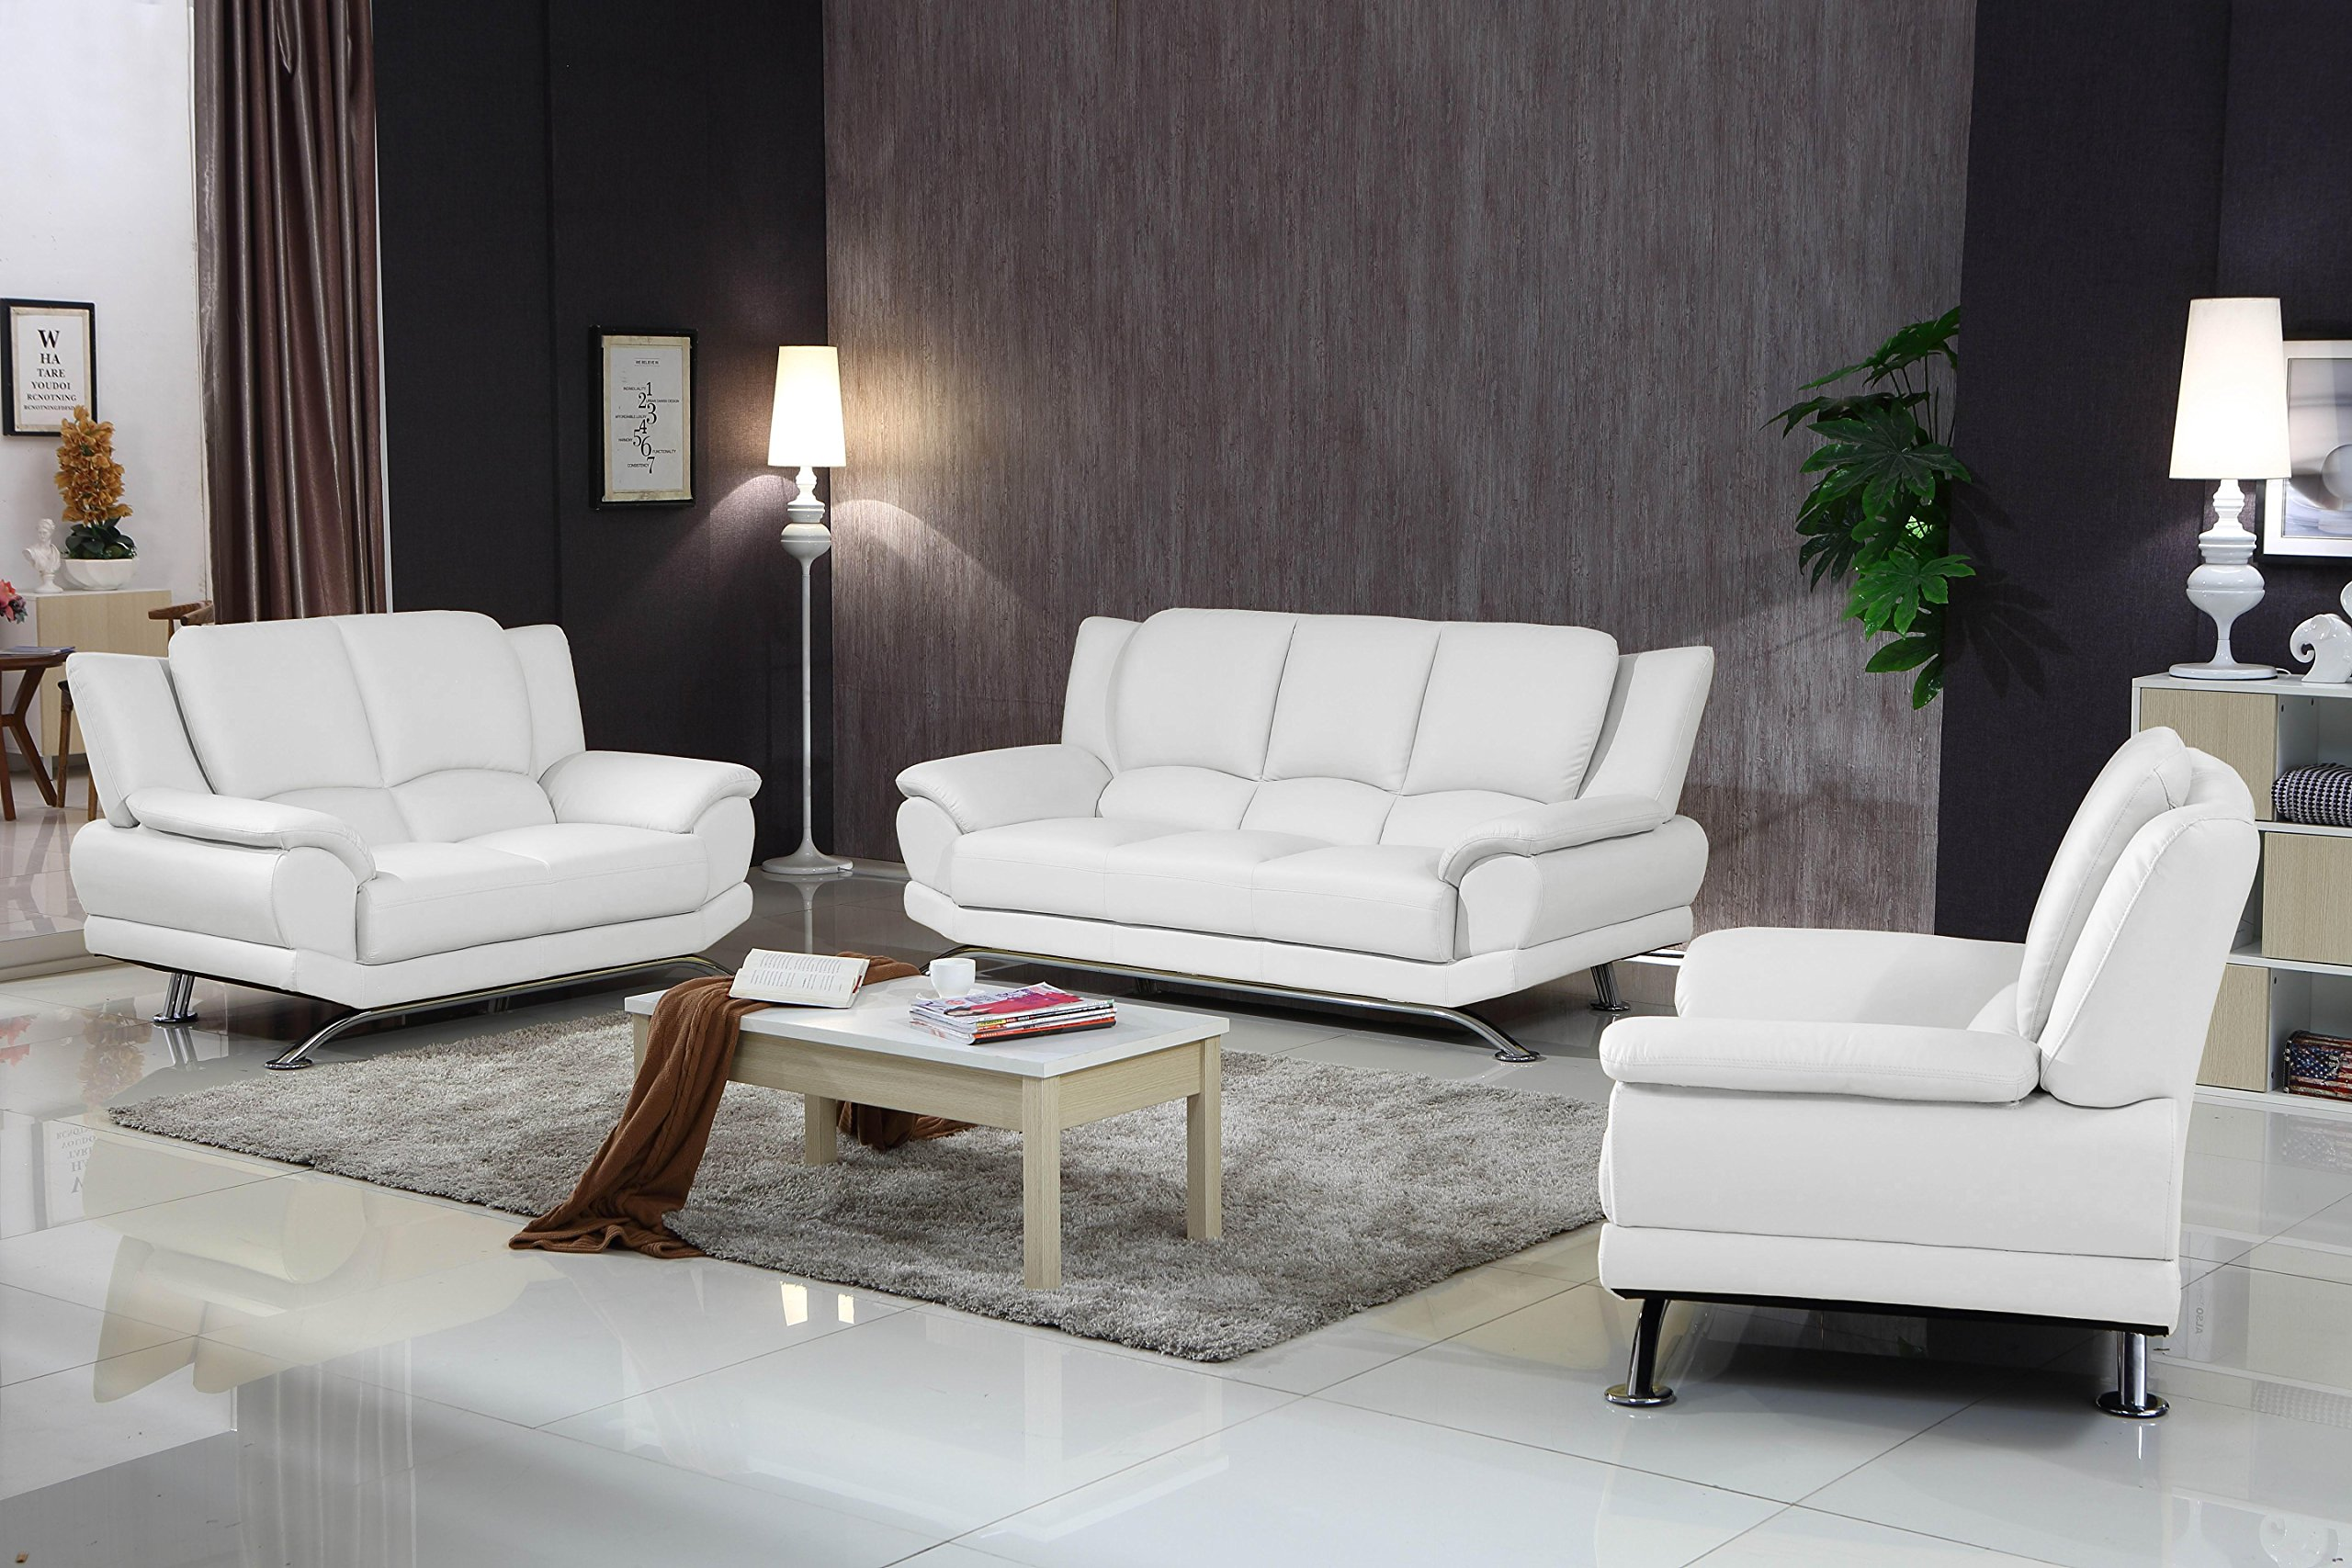 Matisse Milano Contemporary Leather Sofa Set (White) by Matisse